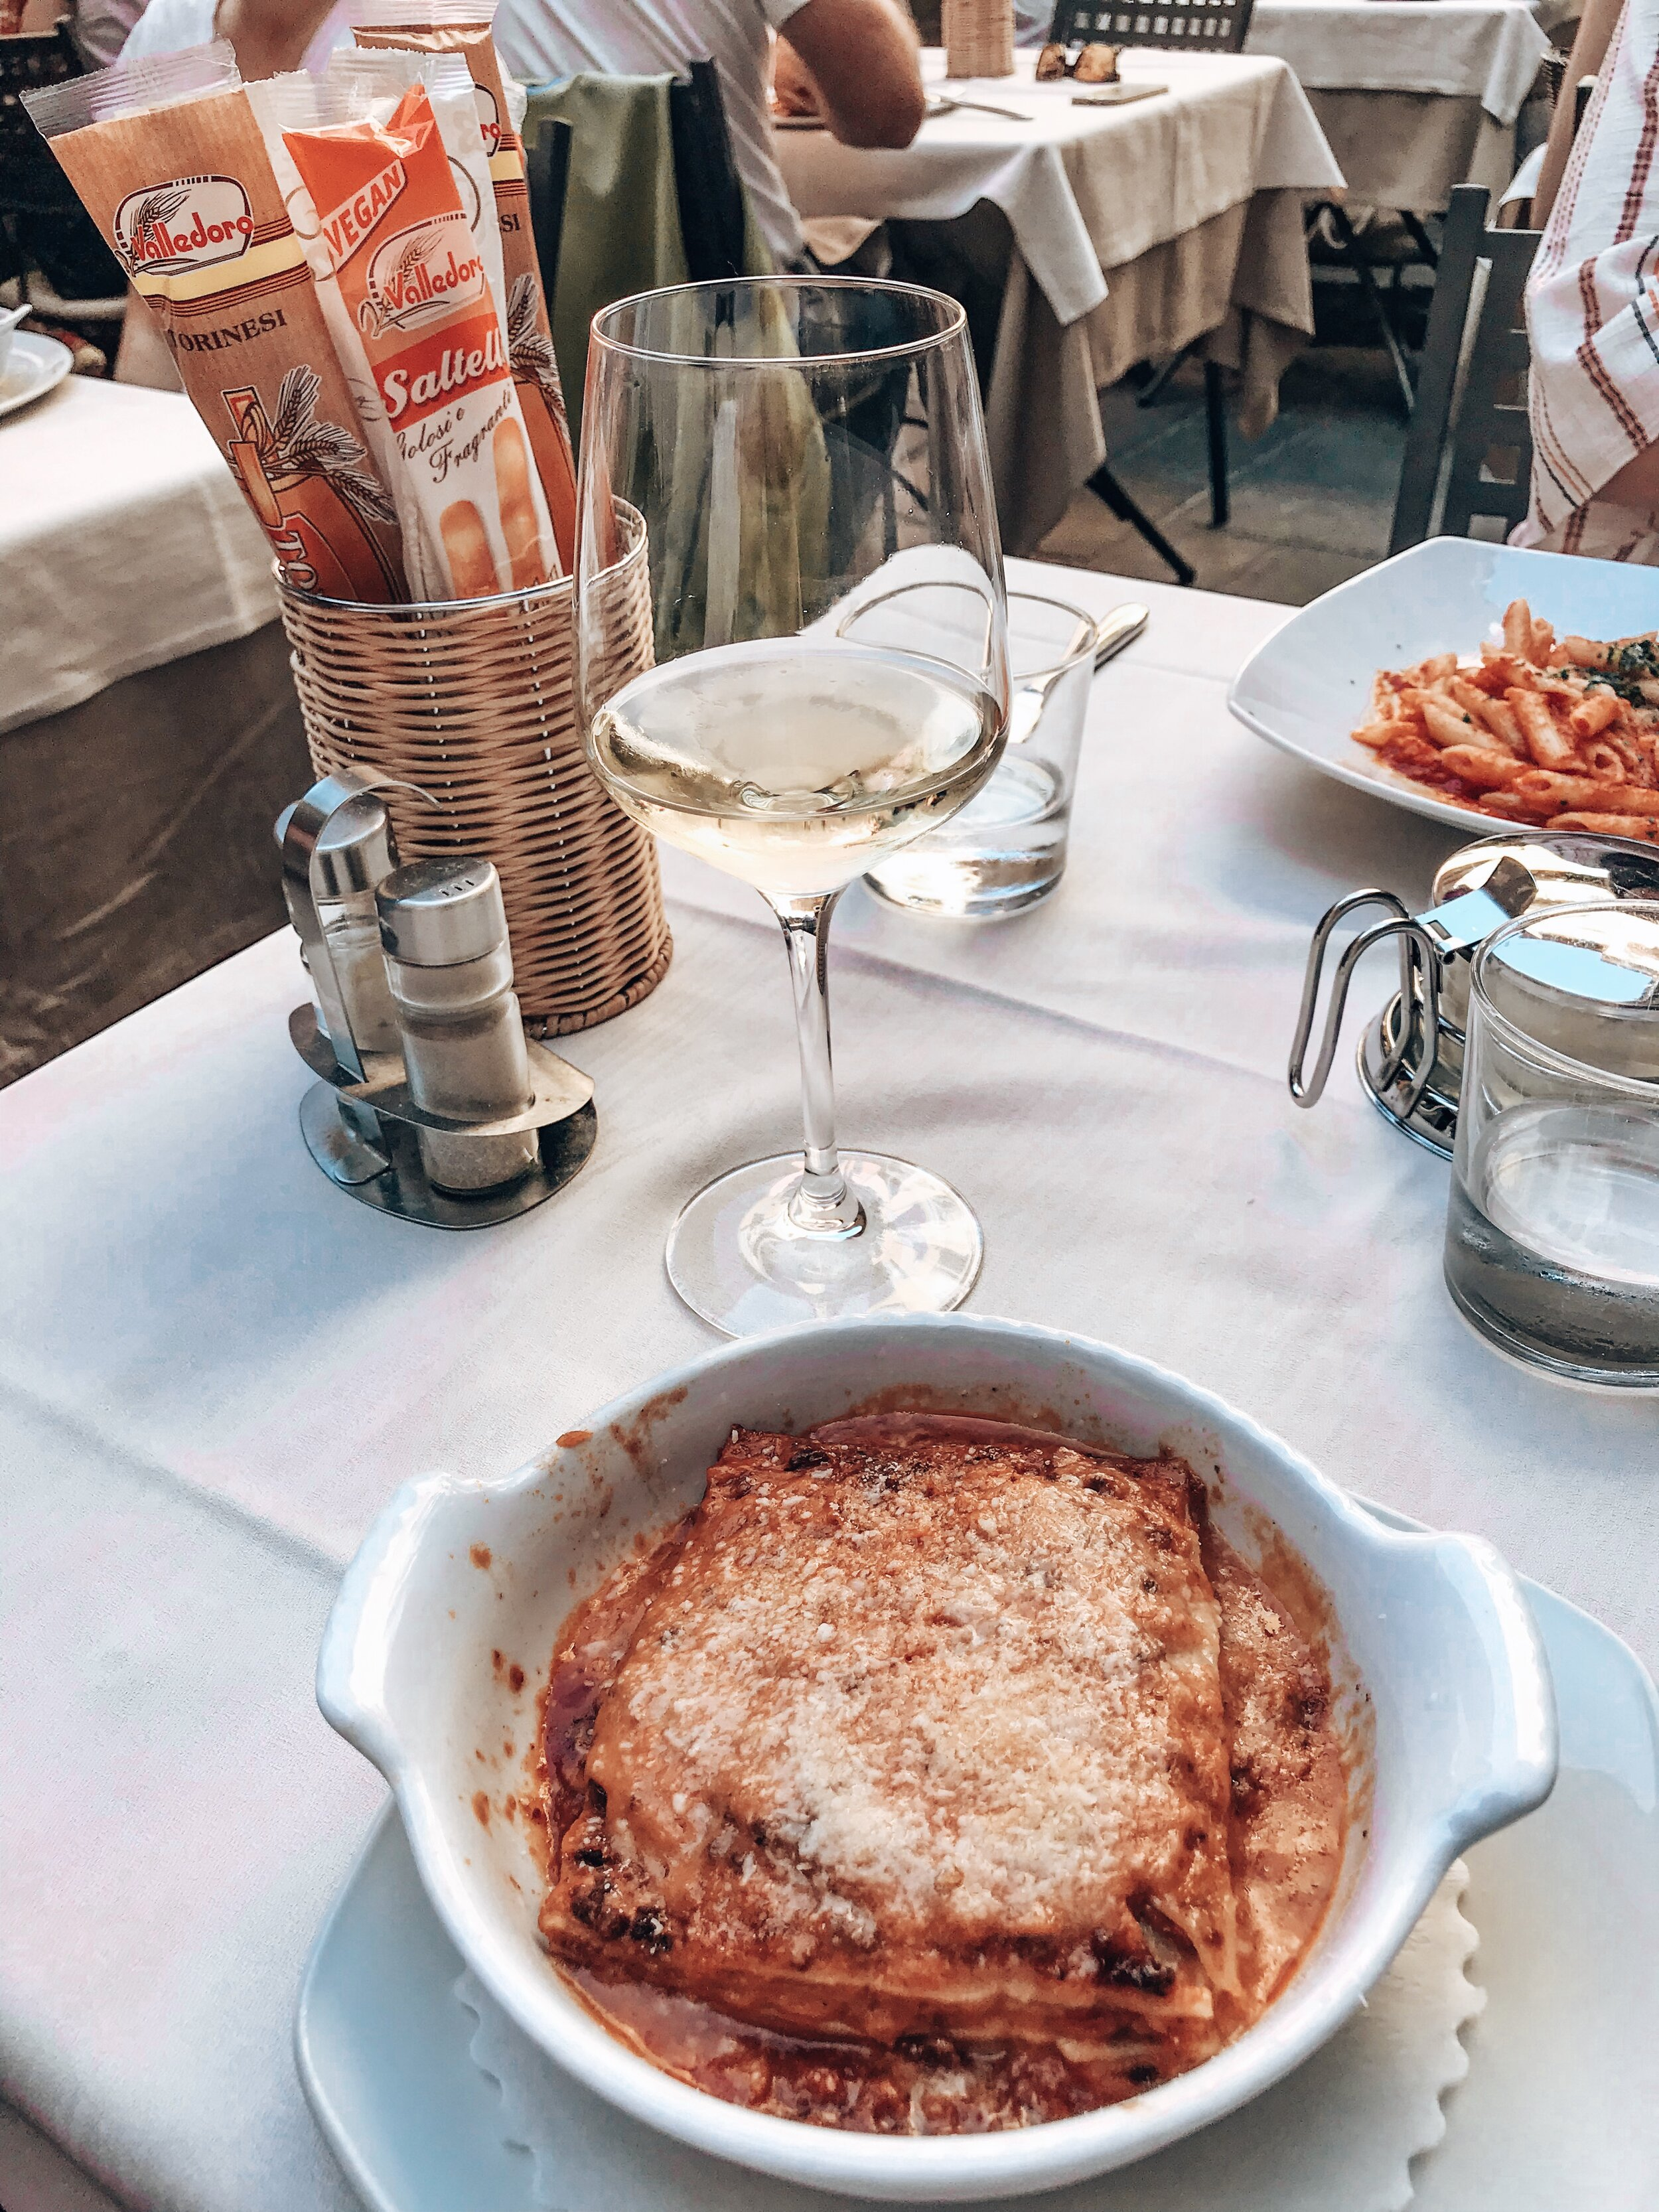 Grab Lunch at Antico Pozzo - We wandered around the streets going in and out of various restaurants until we finally found THE ONE. Antico Pozzo did NOT disappoint. I would highly recommend this restaurant for all your pizza, pasta and wine fix.